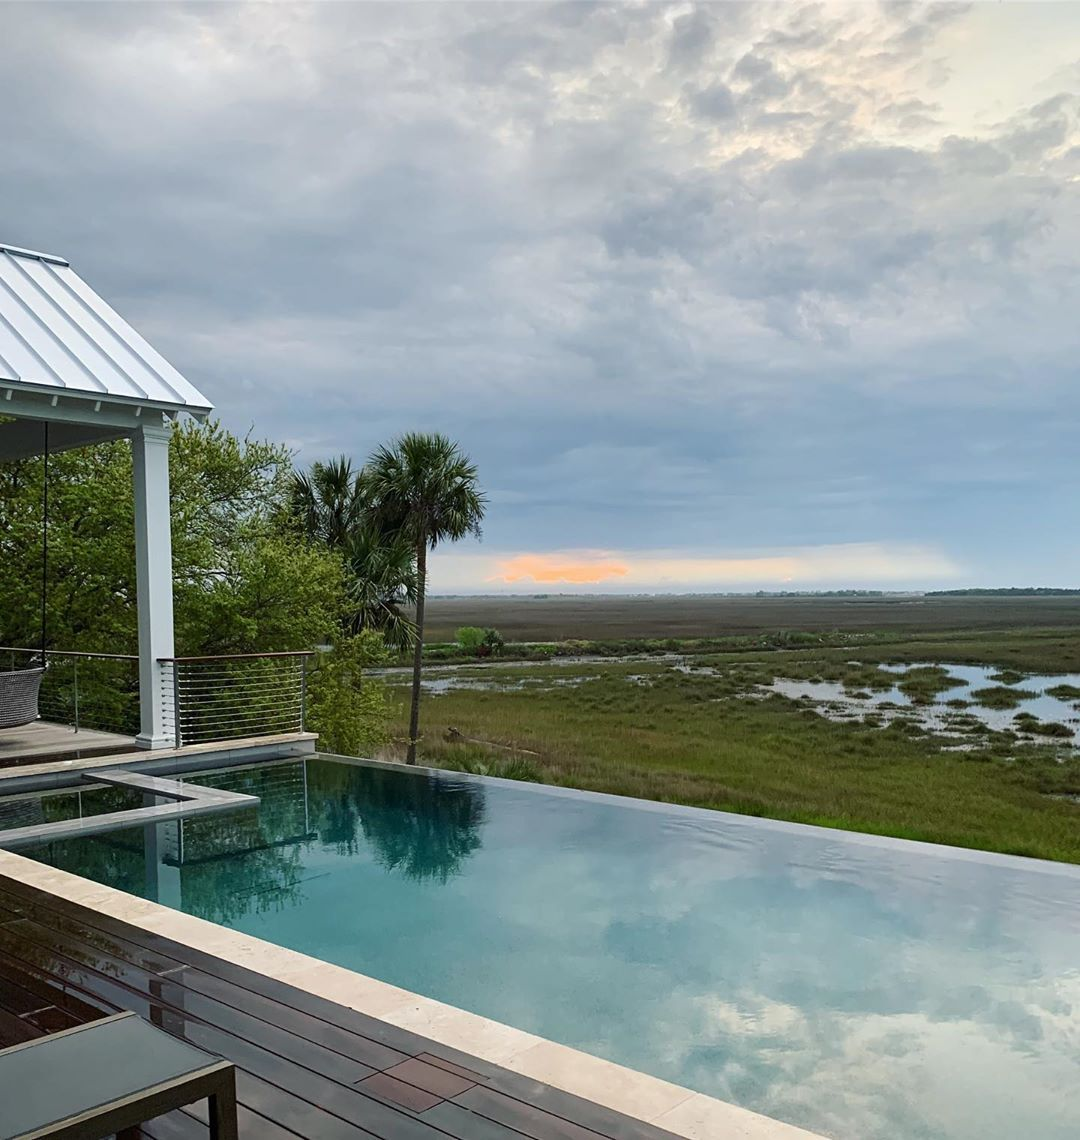 """The_Exchange_Co's Instagram profile post: """"Here's a view we could get used to! #theexchangeco #backyardrenovation #lovewhereyoulive #charlestonrealestate #infinitypool #charlestonsc…"""""""